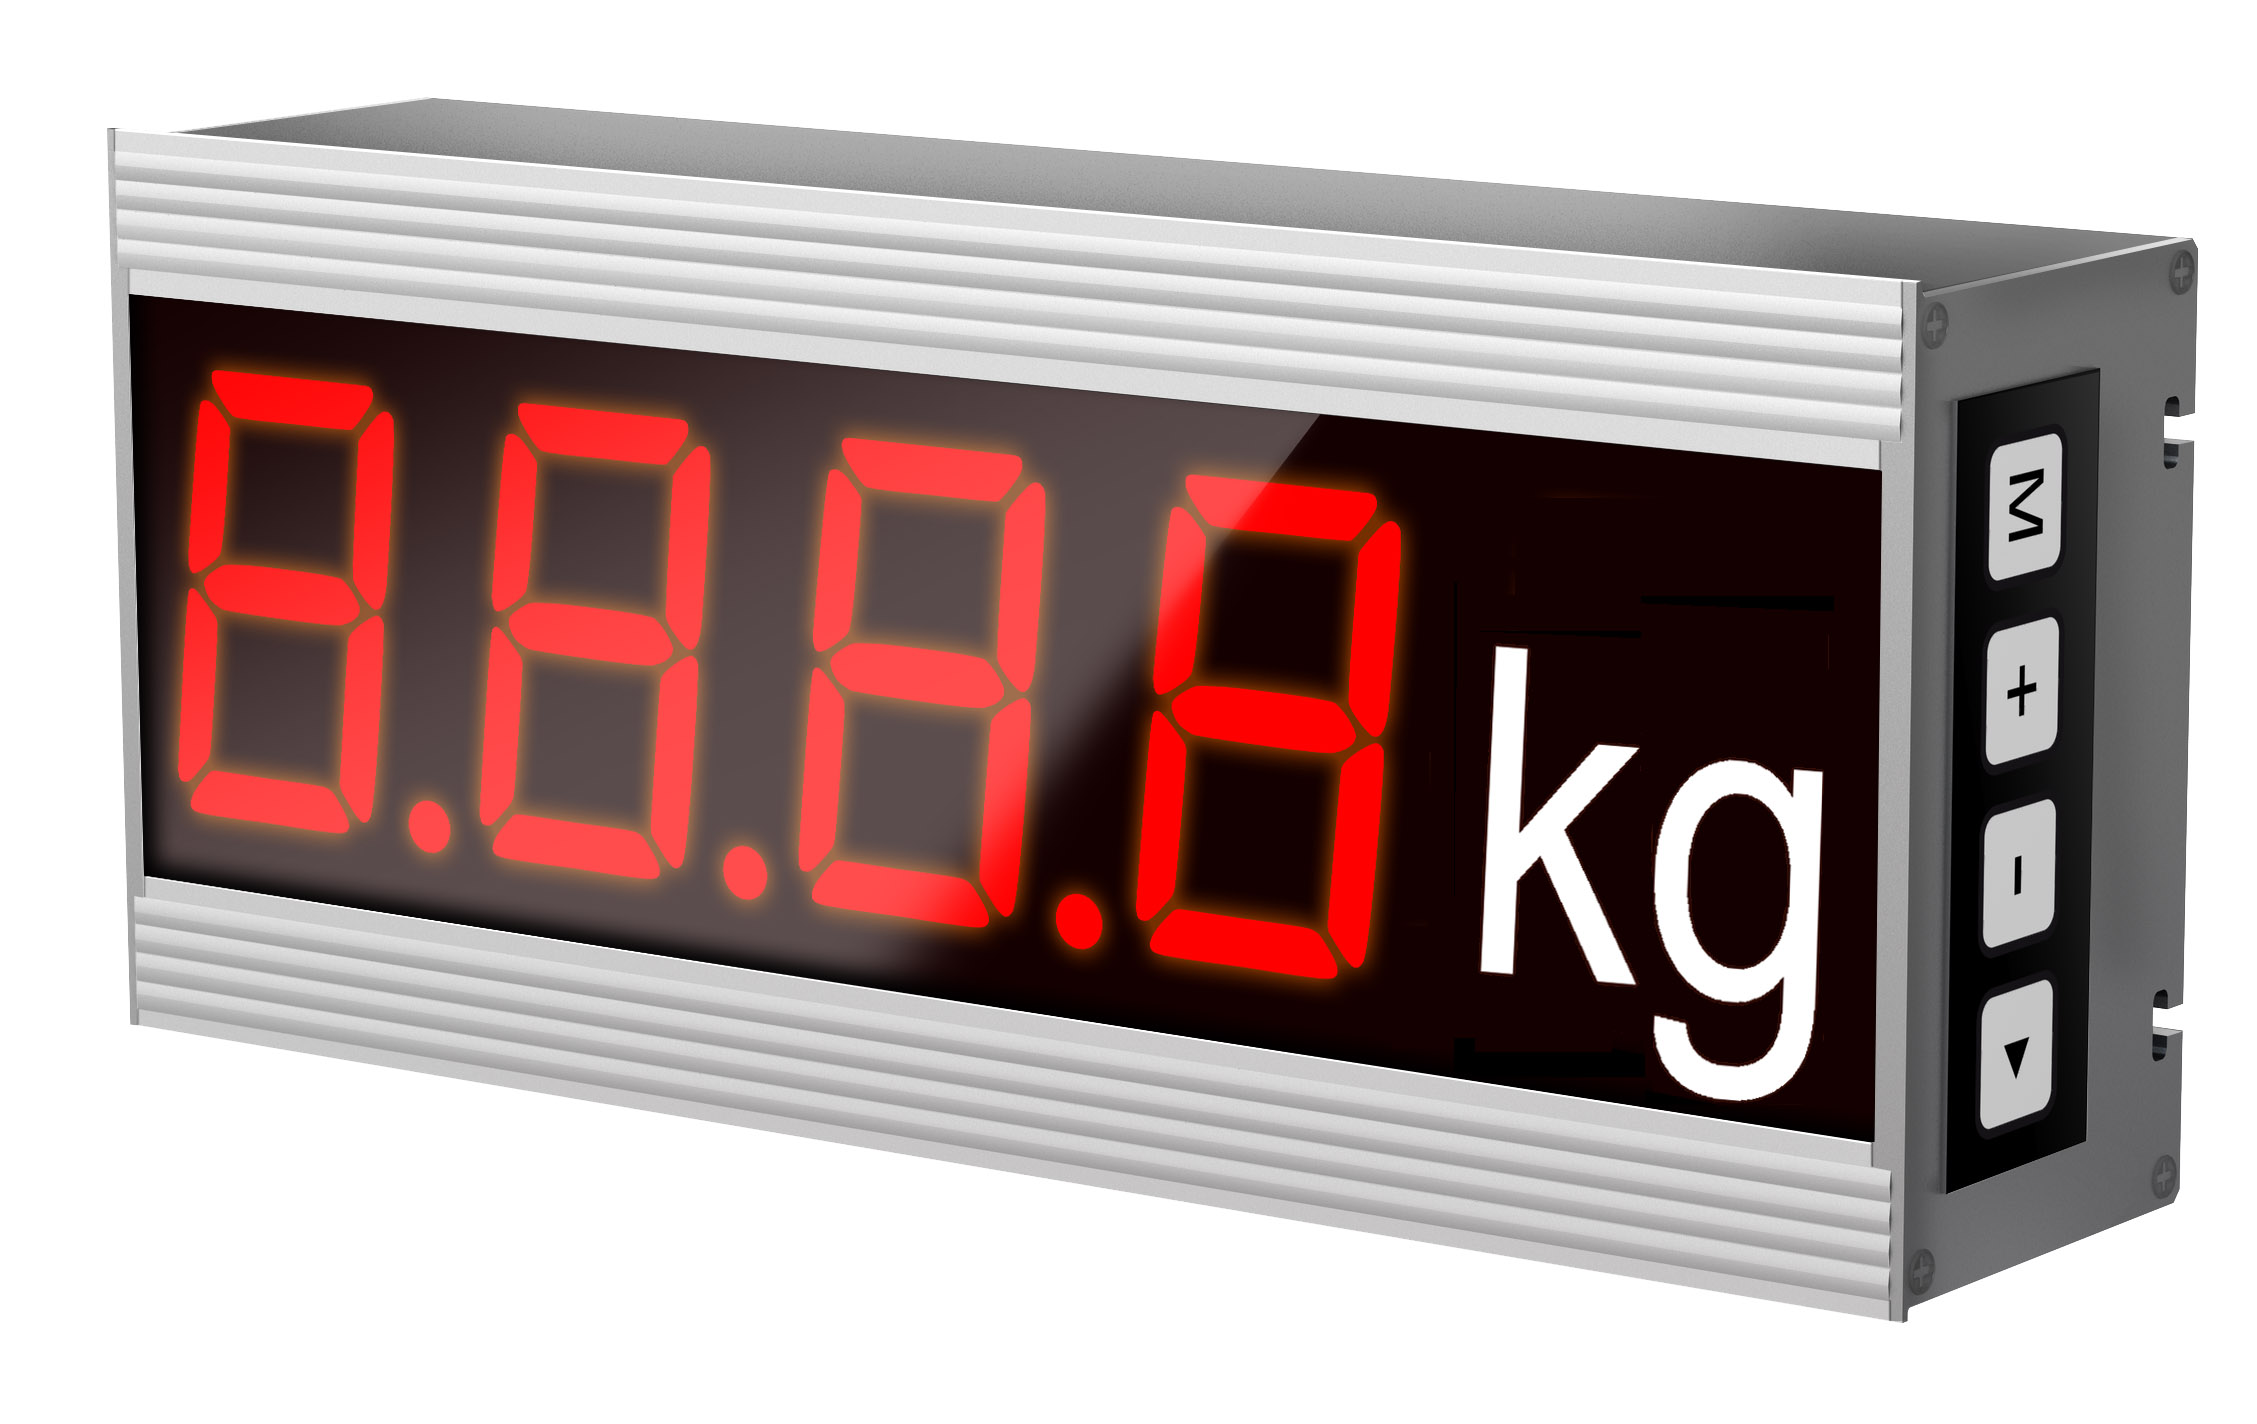 Installation display temperature, character height 60 mm, 4 characters, IP54